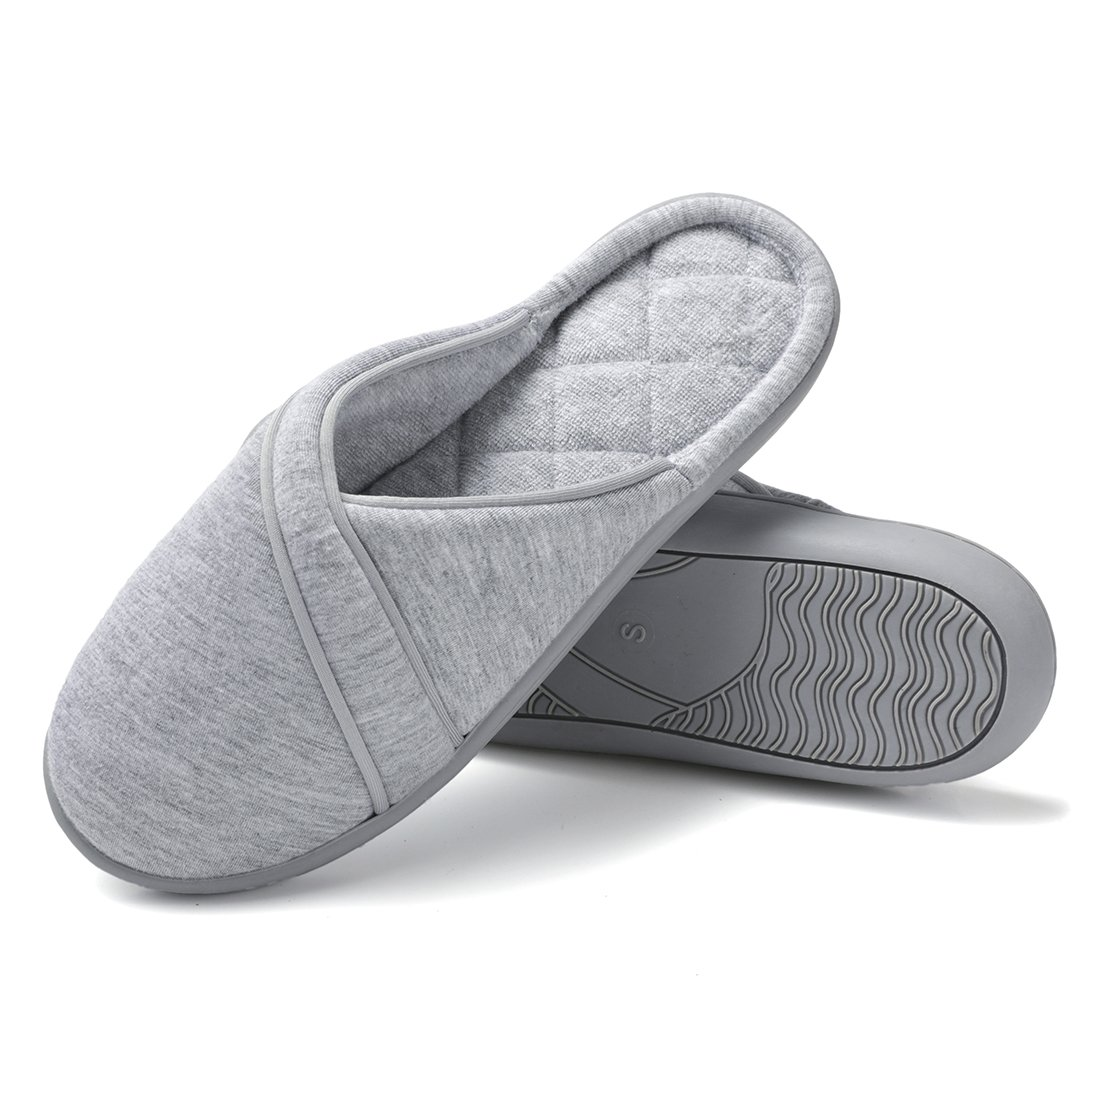 Dailybella Women's Cotton Slip On Slippers Anti-Slip Comfort Indoor Outdoor House Slippers (8-8.5 B(M) US, Grey)